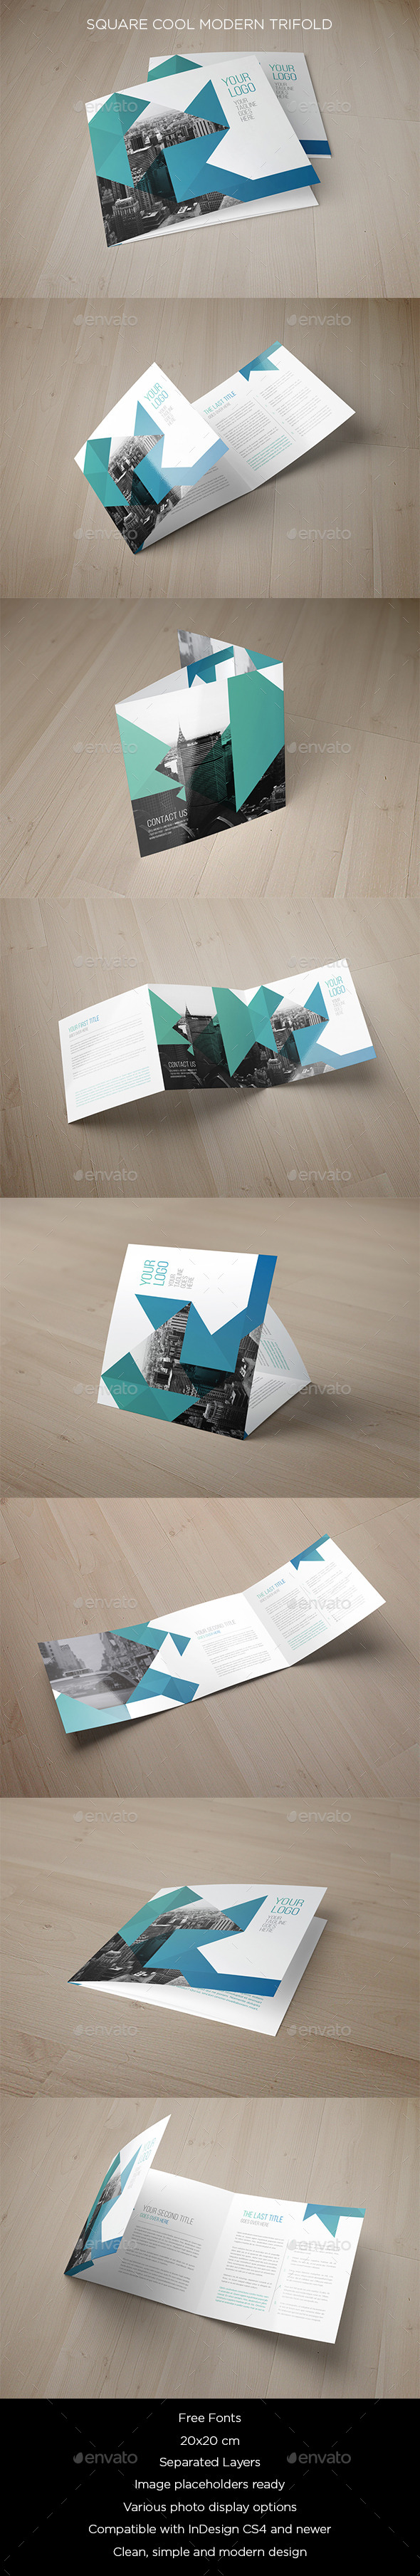 GraphicRiver Square Cool Modern Trifold 11630167